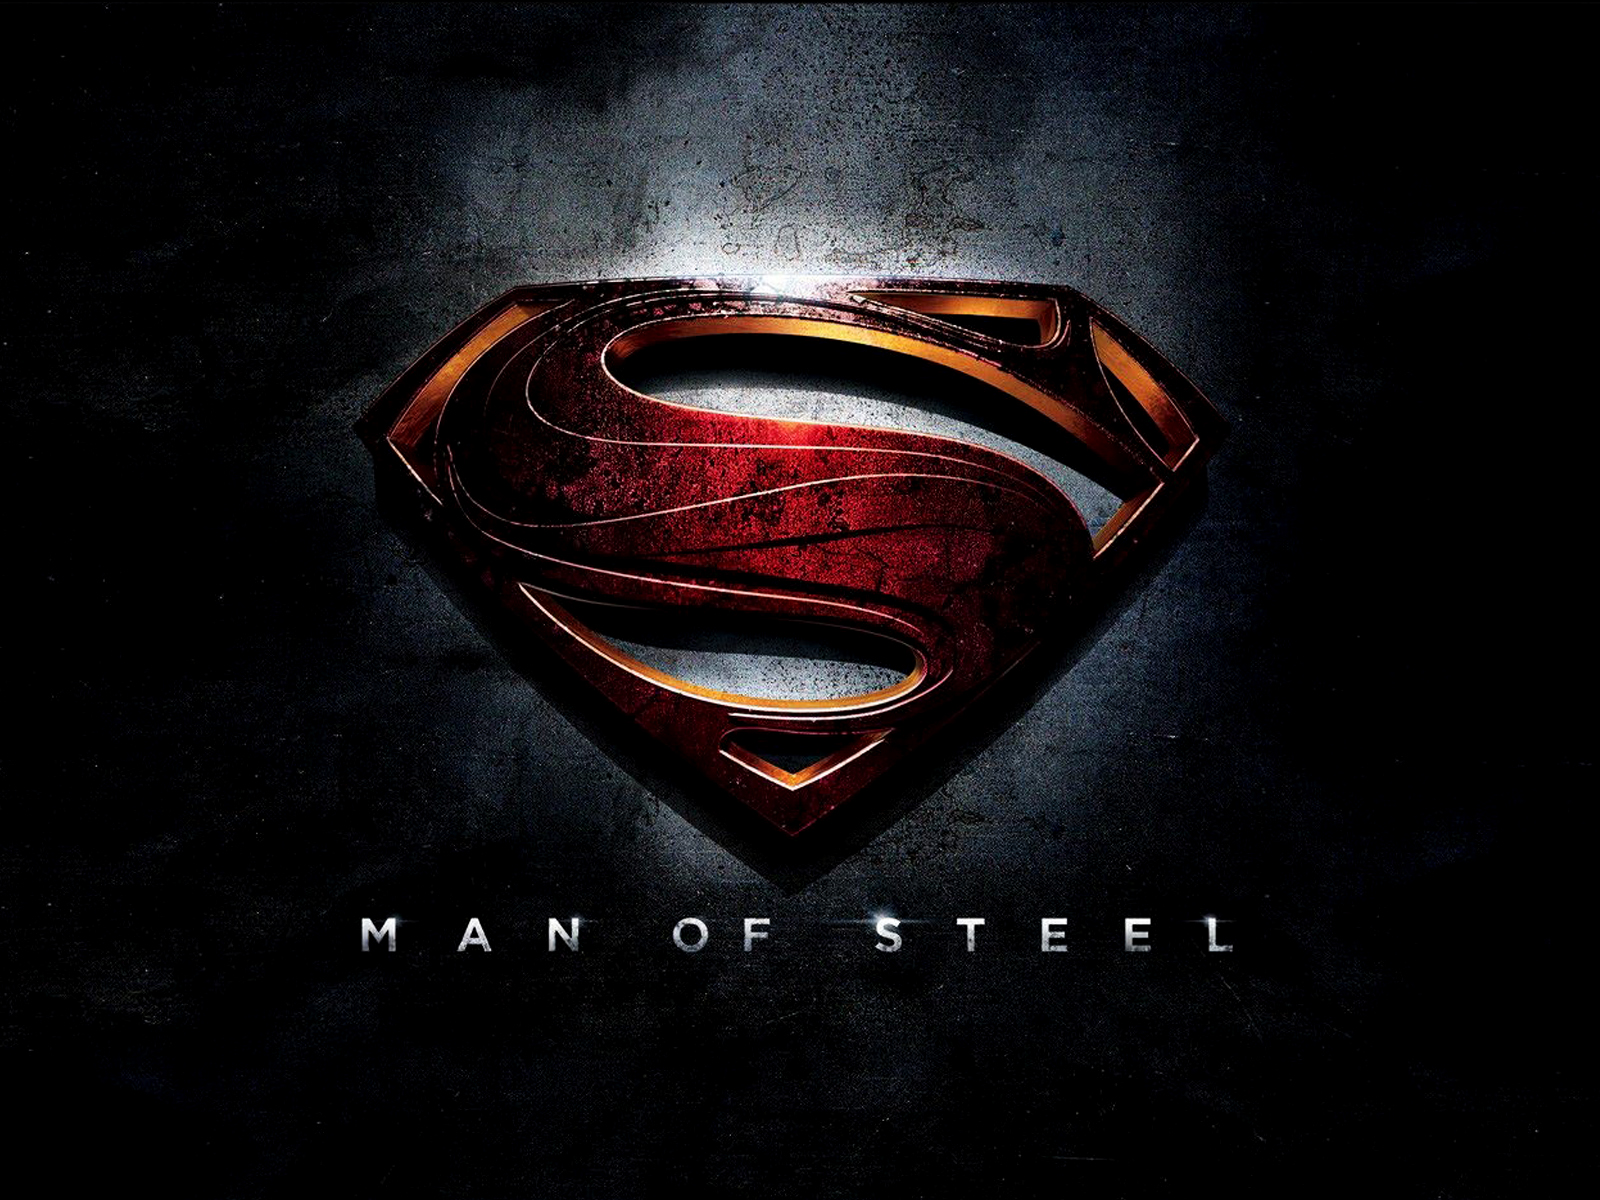 superman man of steel 3d logo hd wallpaper | wide screen wallpaper